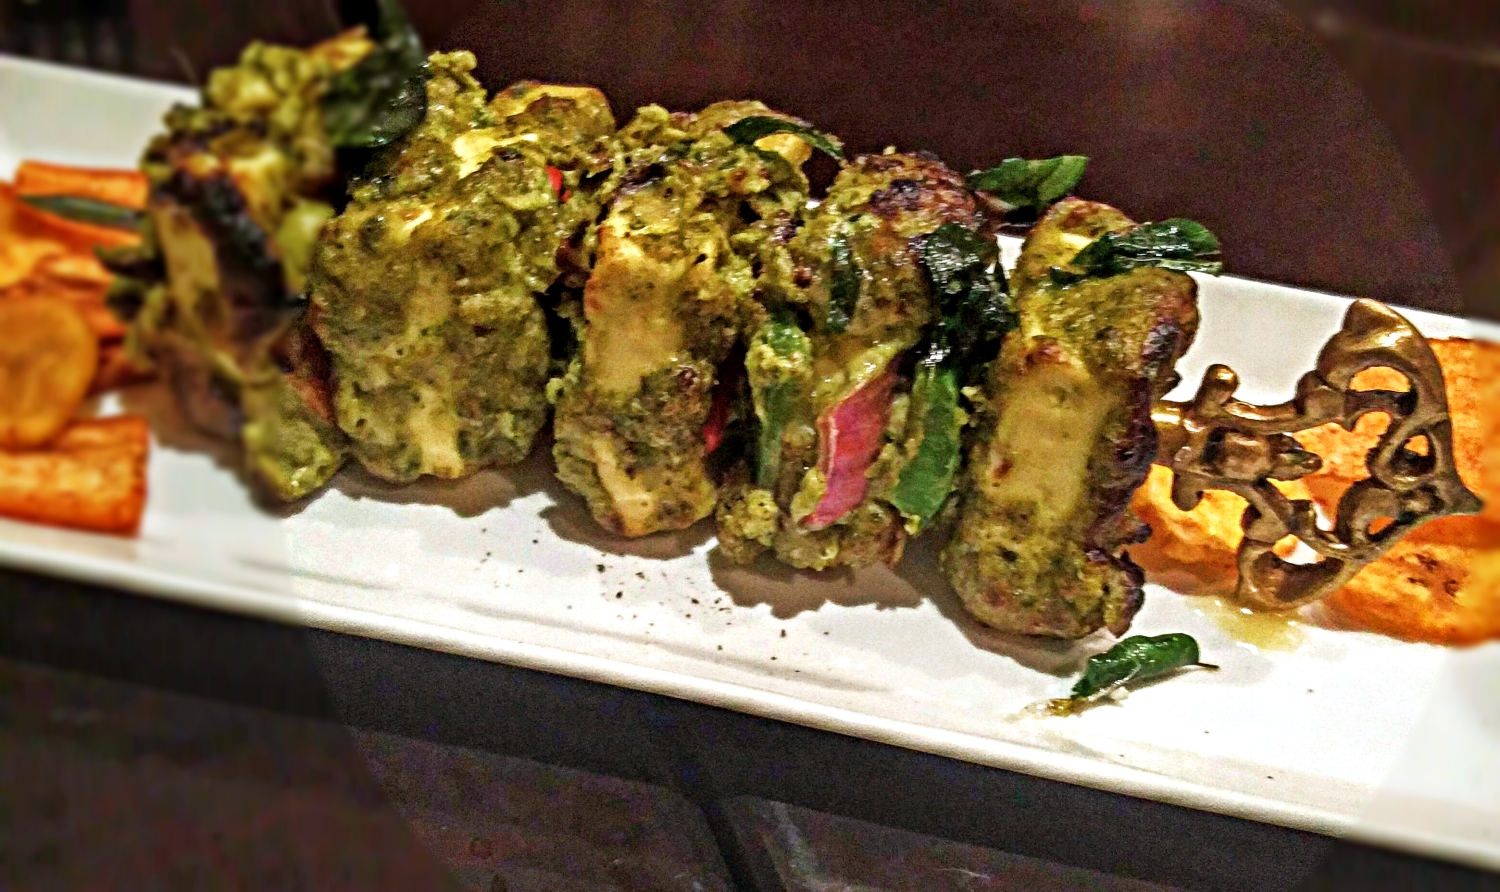 Karuveppilai Paneer Tikka - These are cottage cheese kebabs with a southern twist. The curry leaves loads in nostalgia of southern Indian chutney.